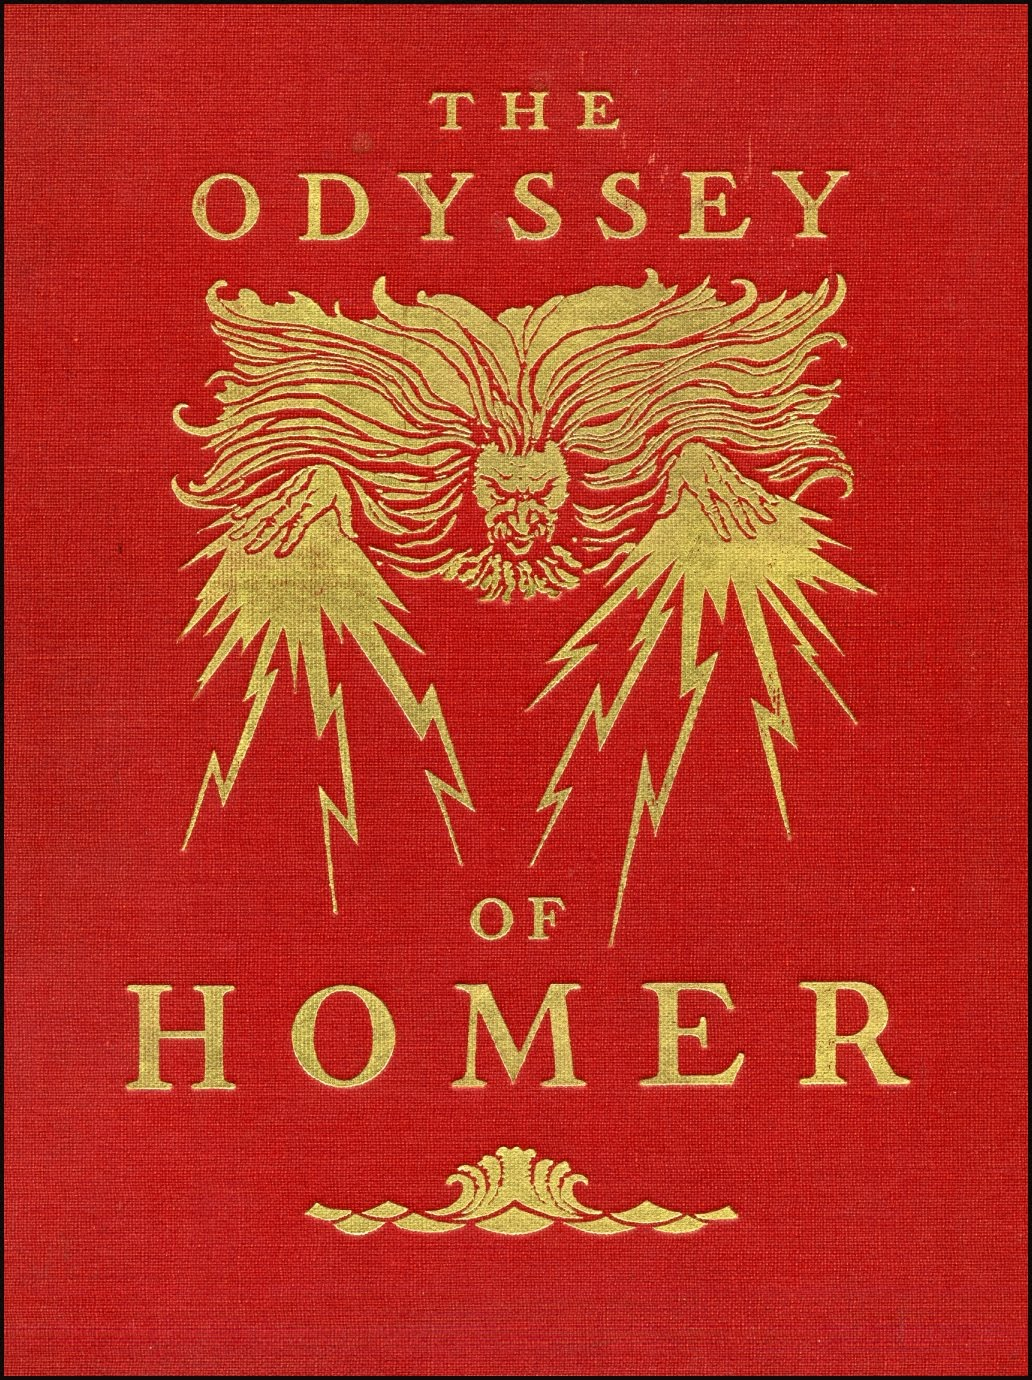 the journey of odysseus in the land of the cyclops in odyssey a poem by homer